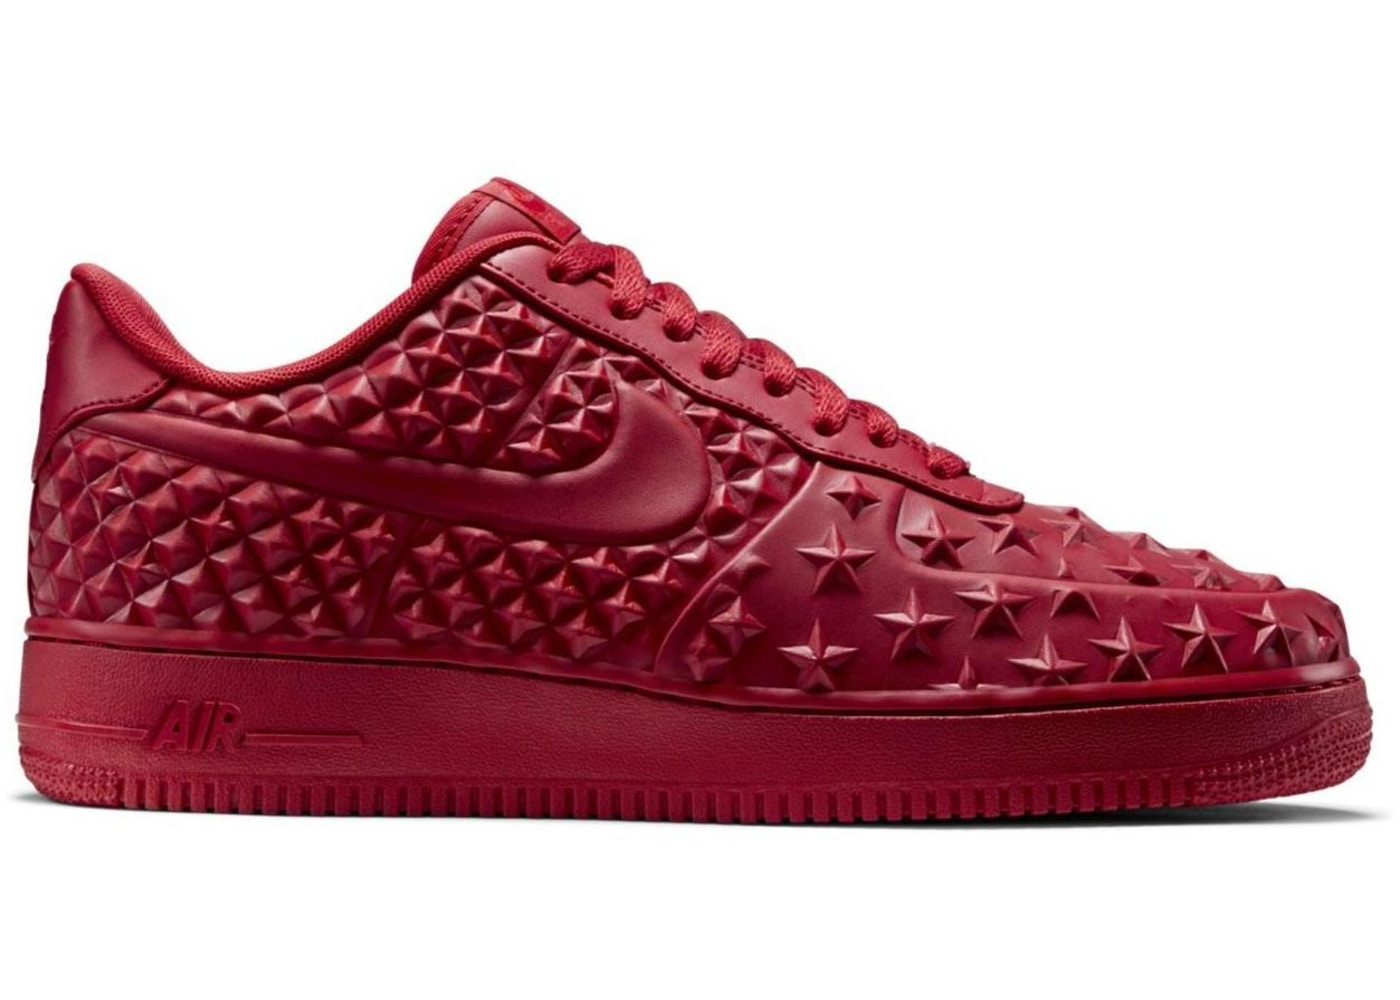 construcción esquina Trampas  Nike Air Force 1 Low Independence Day Red - 789104-600